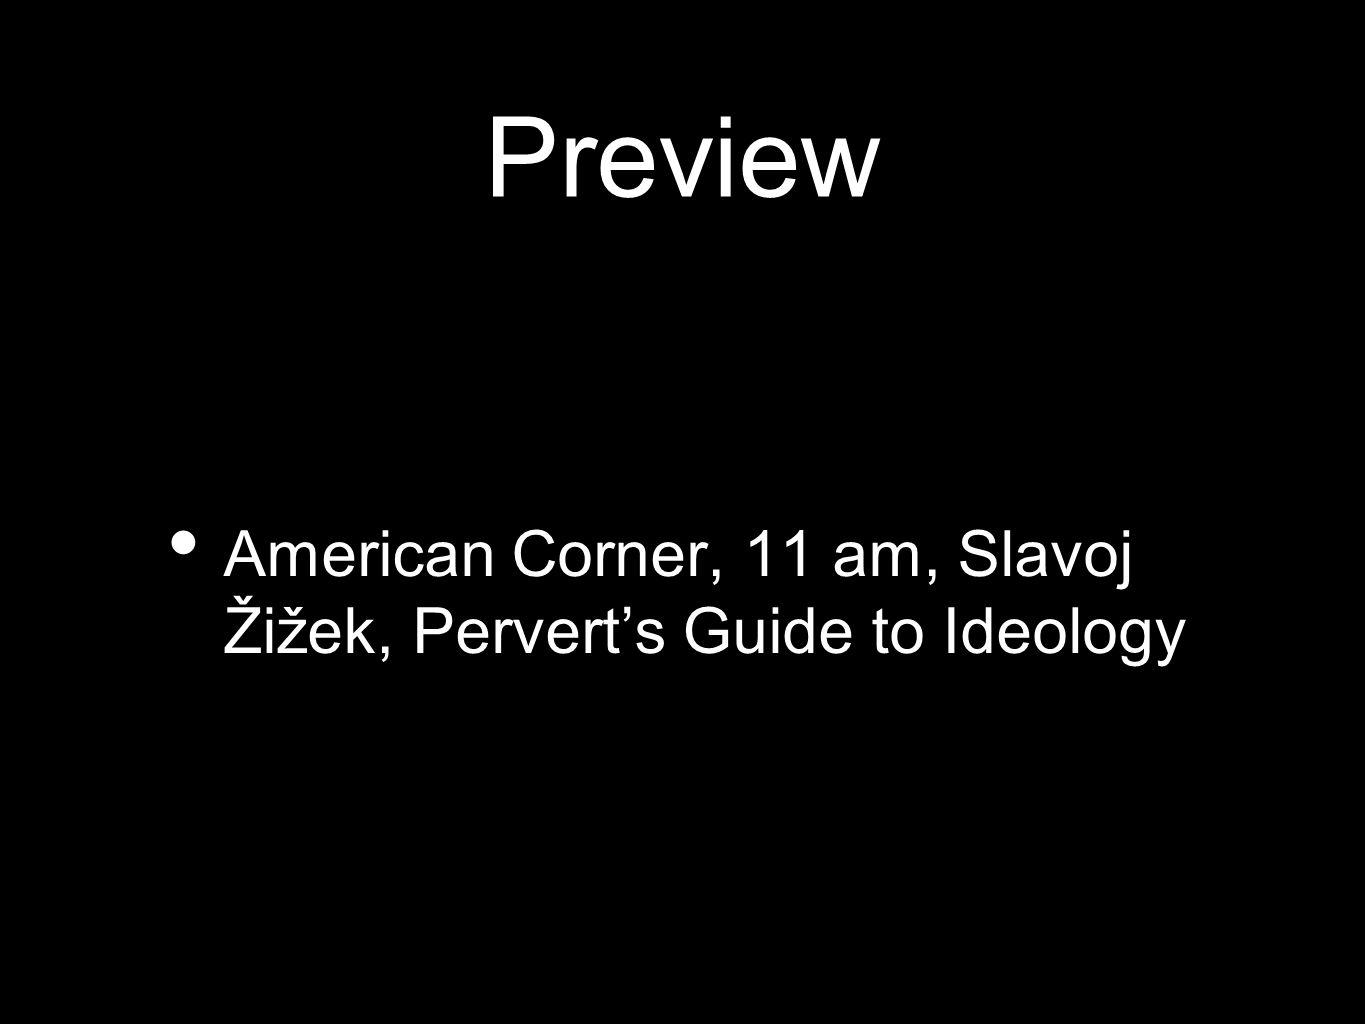 Preview American Corner, 11 am, Slavoj Žižek, Pervert's Guide to Ideology